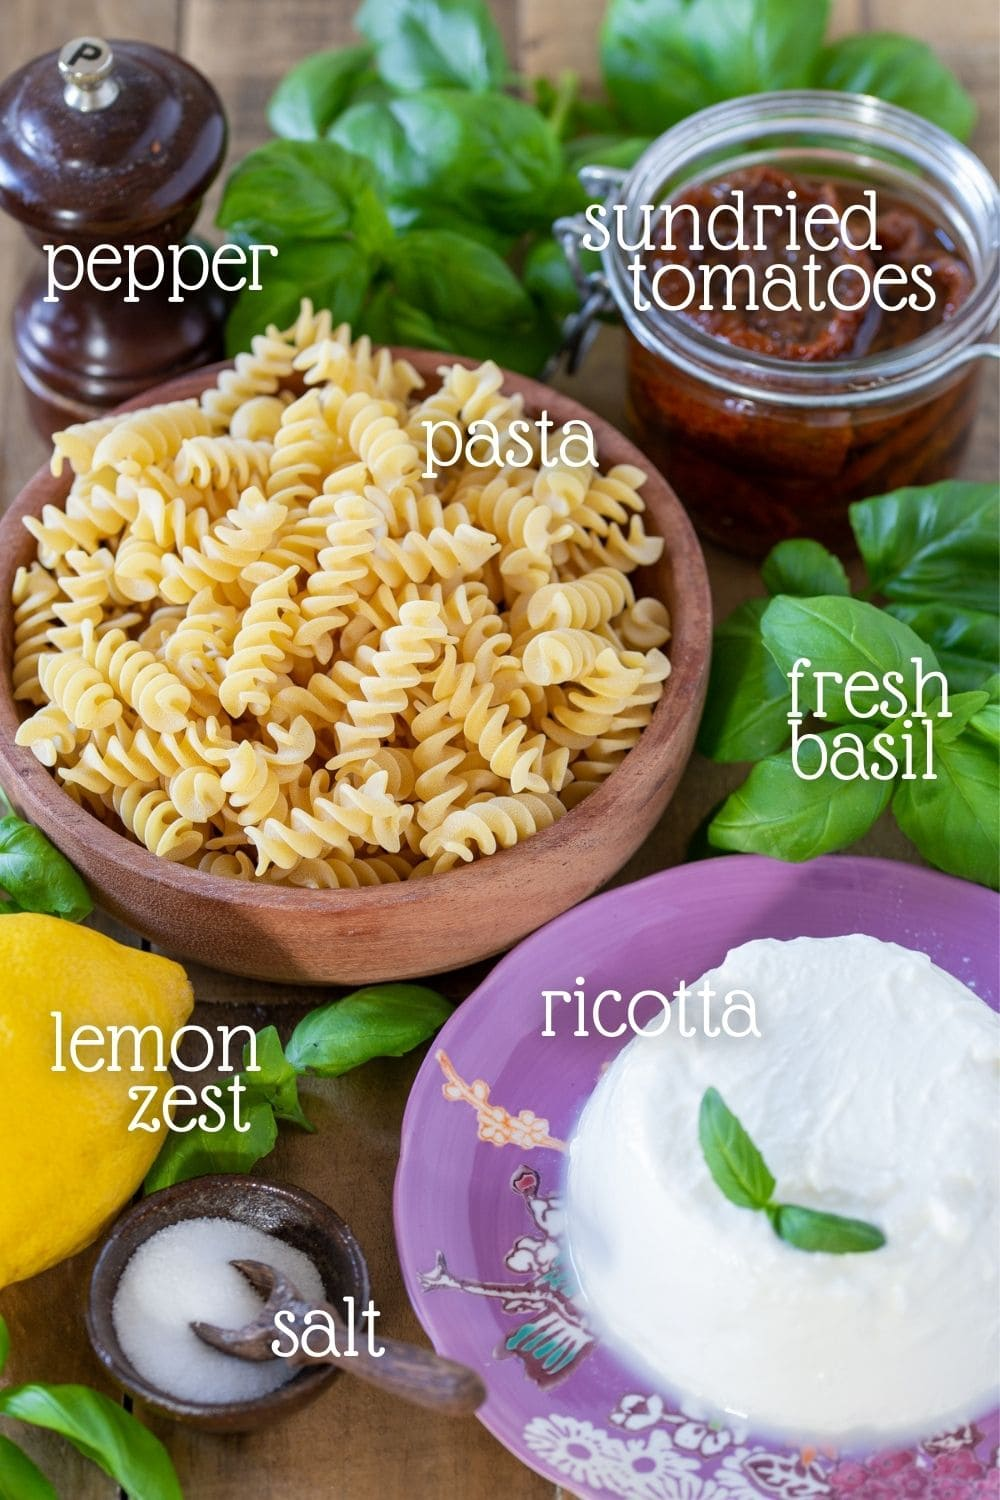 The ingredients needed in this recipe placed in separate bowls.